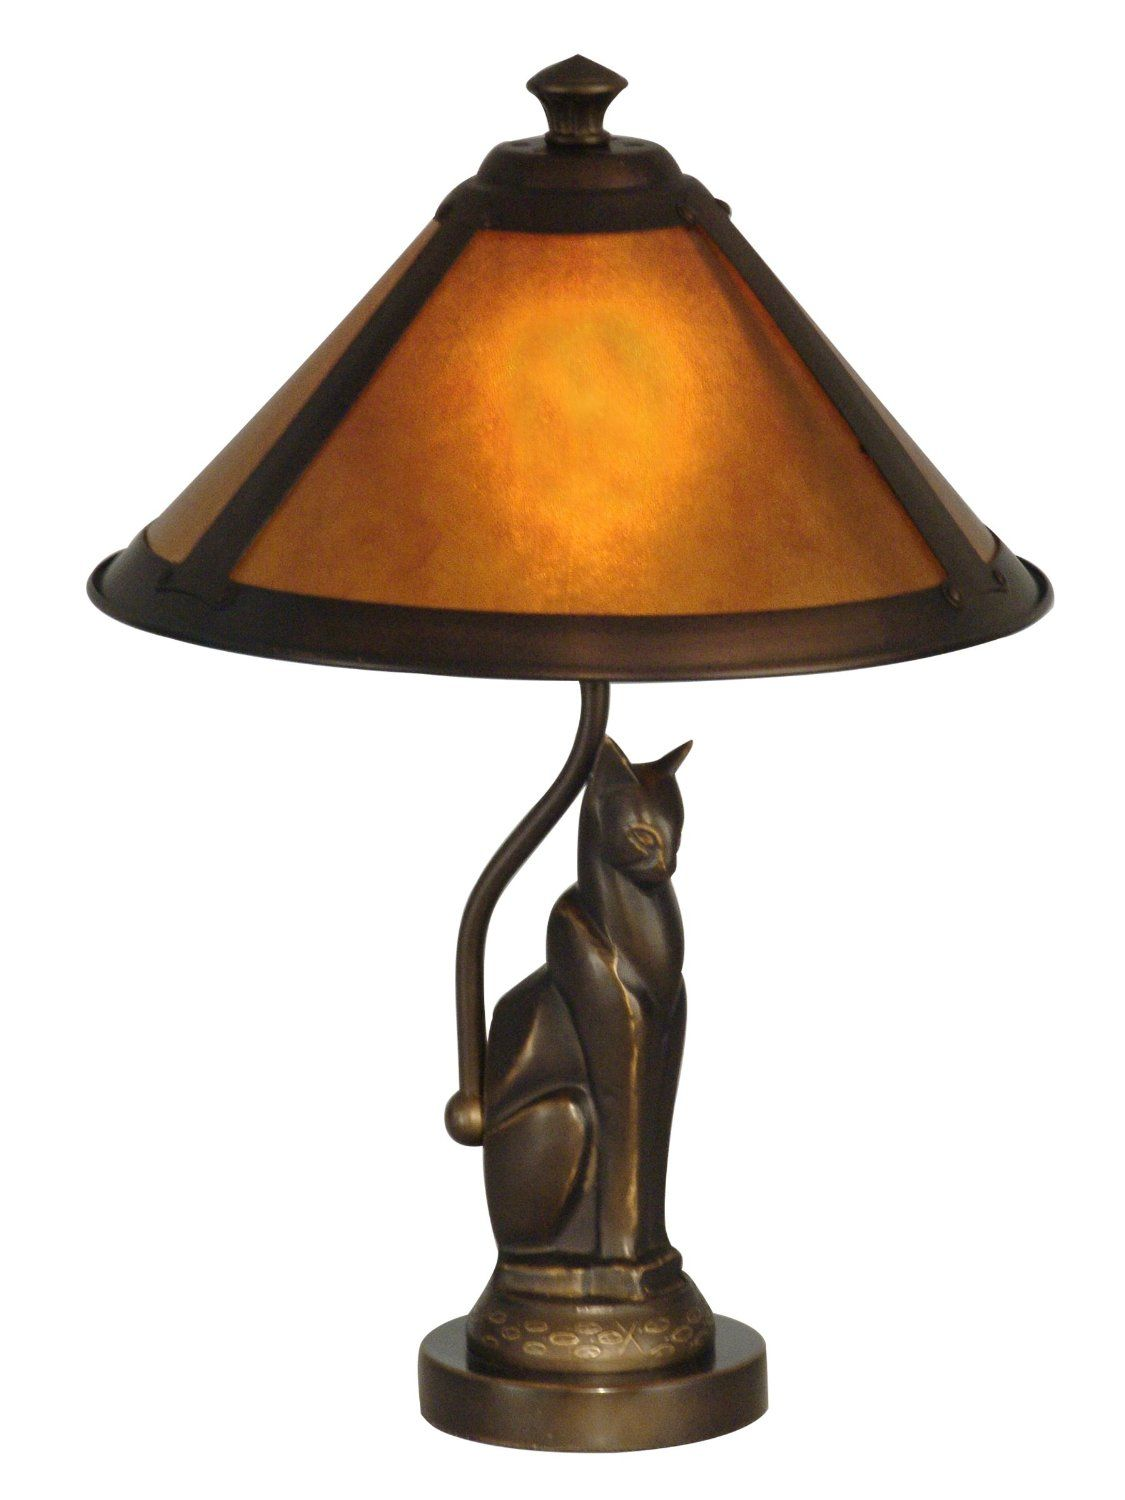 dale tiffany ginger mica cat accent lamp accessories for table lamps distressed round side threshold windham cabinet drum seat with back antique tables drawers bar console tall